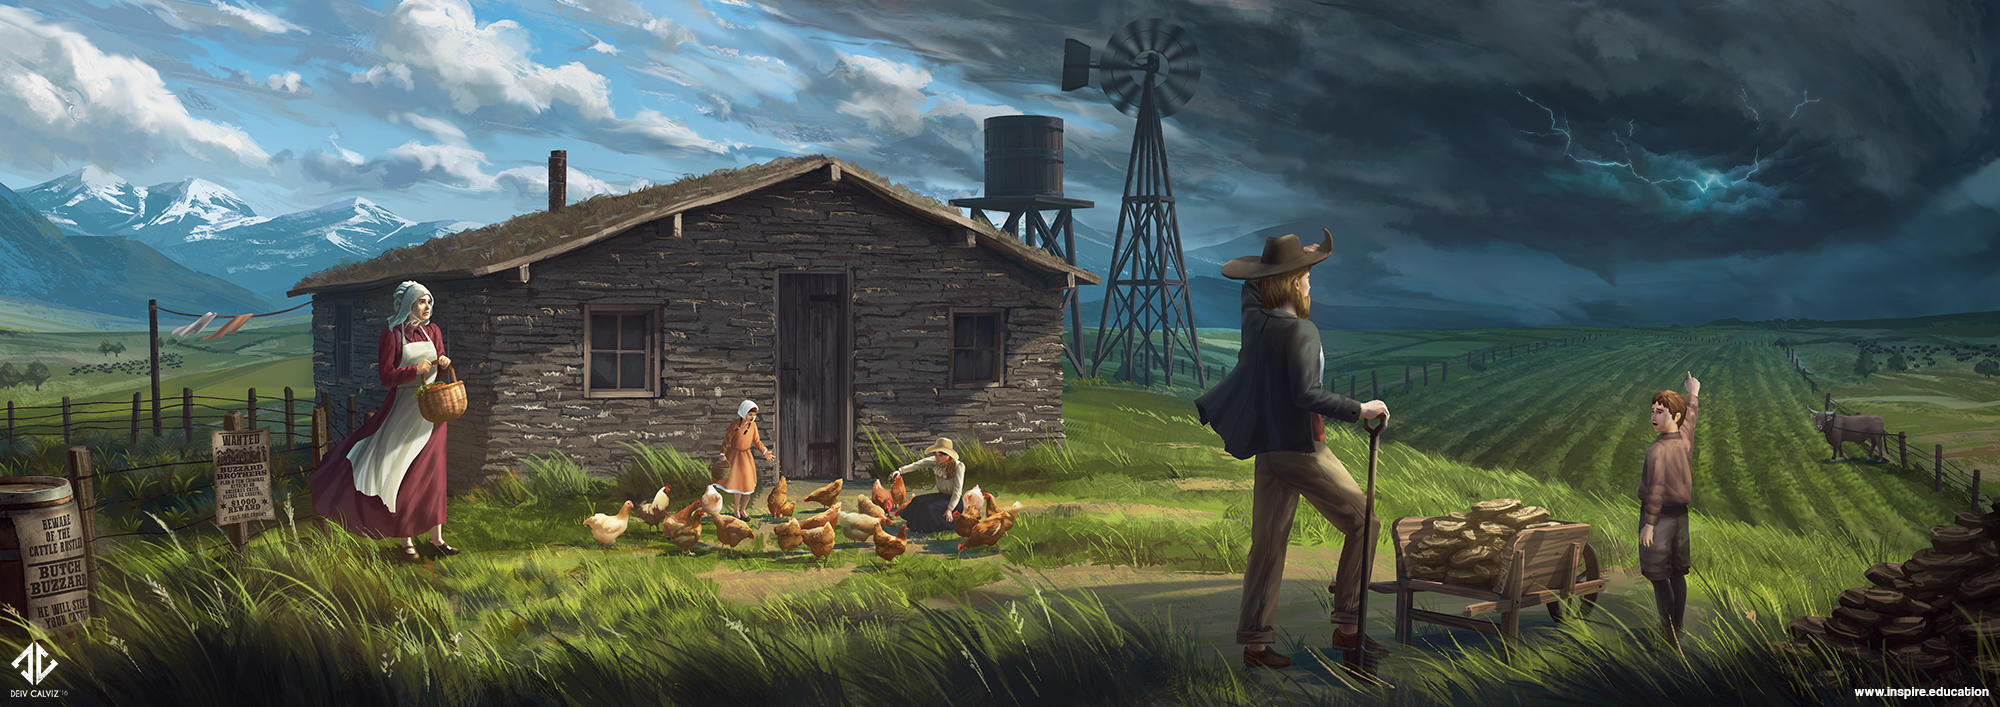 The Homesteaders by DeivCalviz